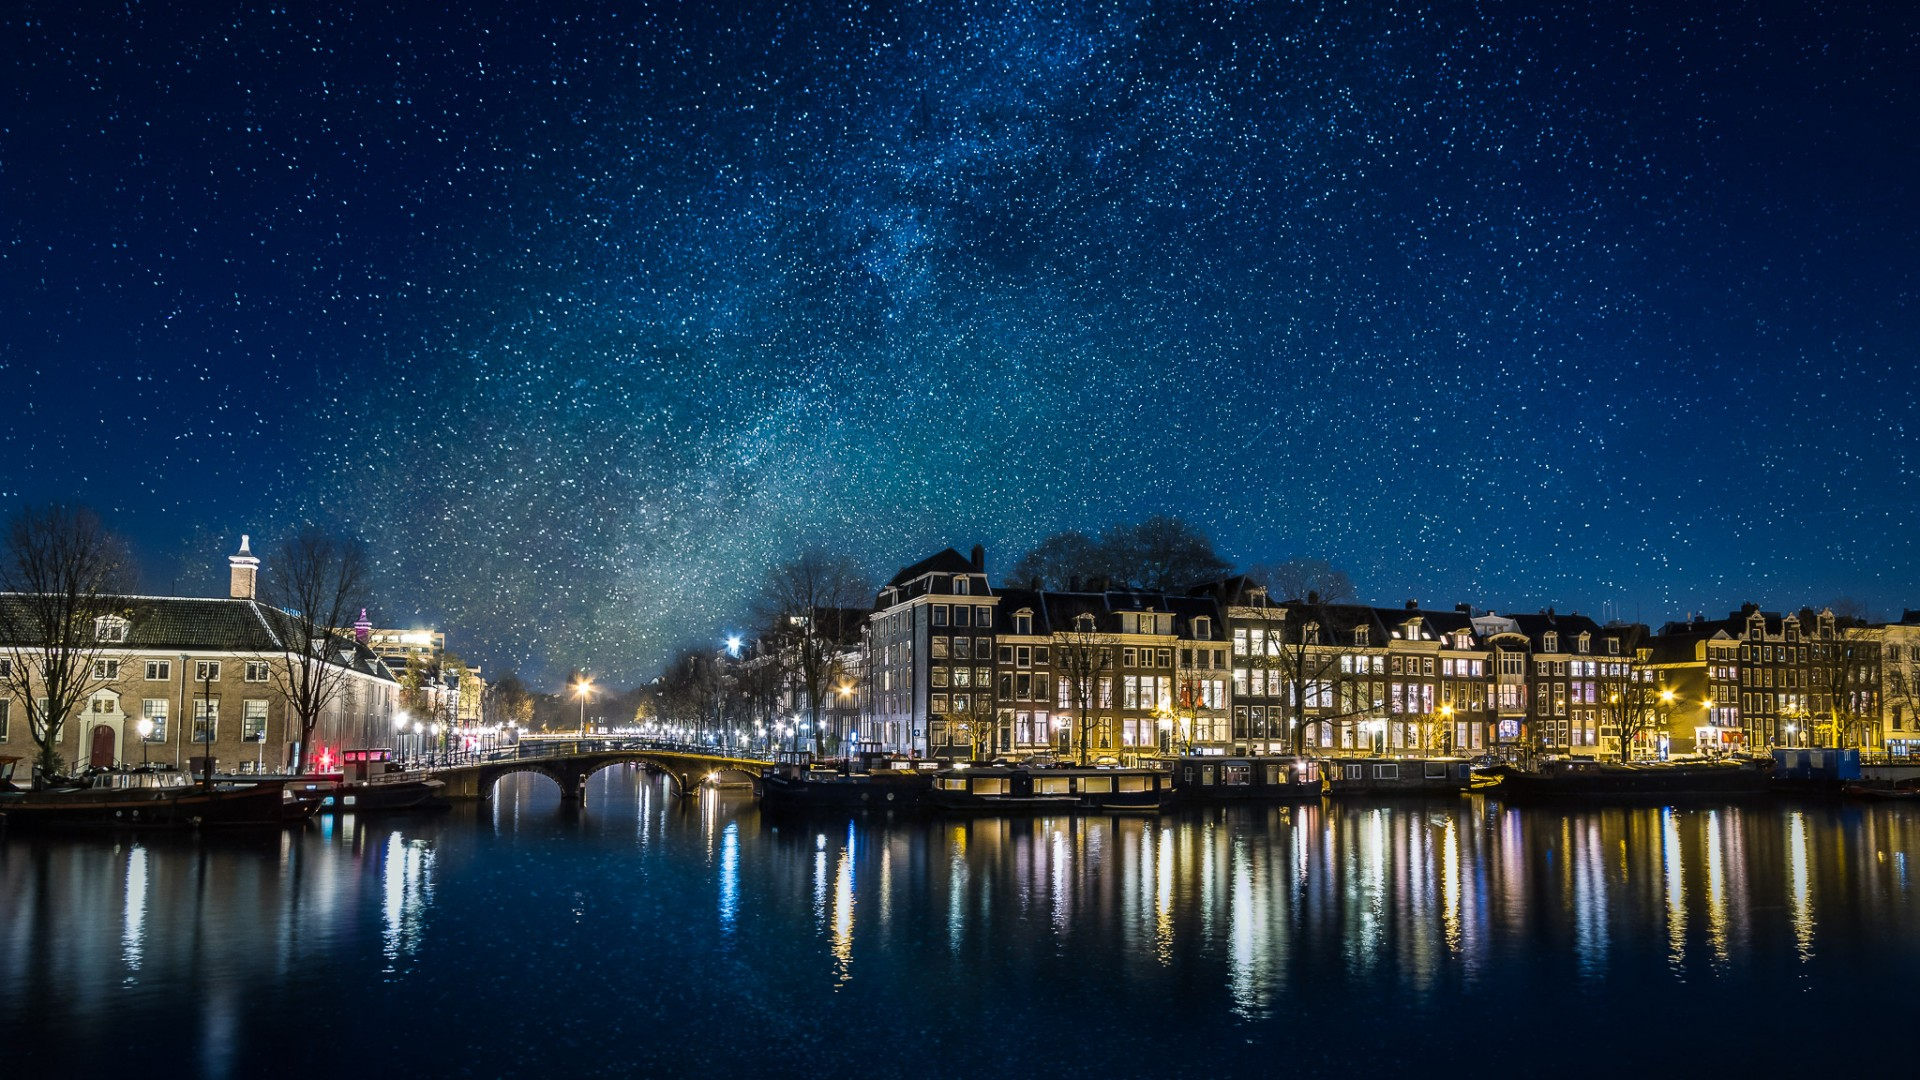 What Would it be like to see the Milky Way over Amsterdam?